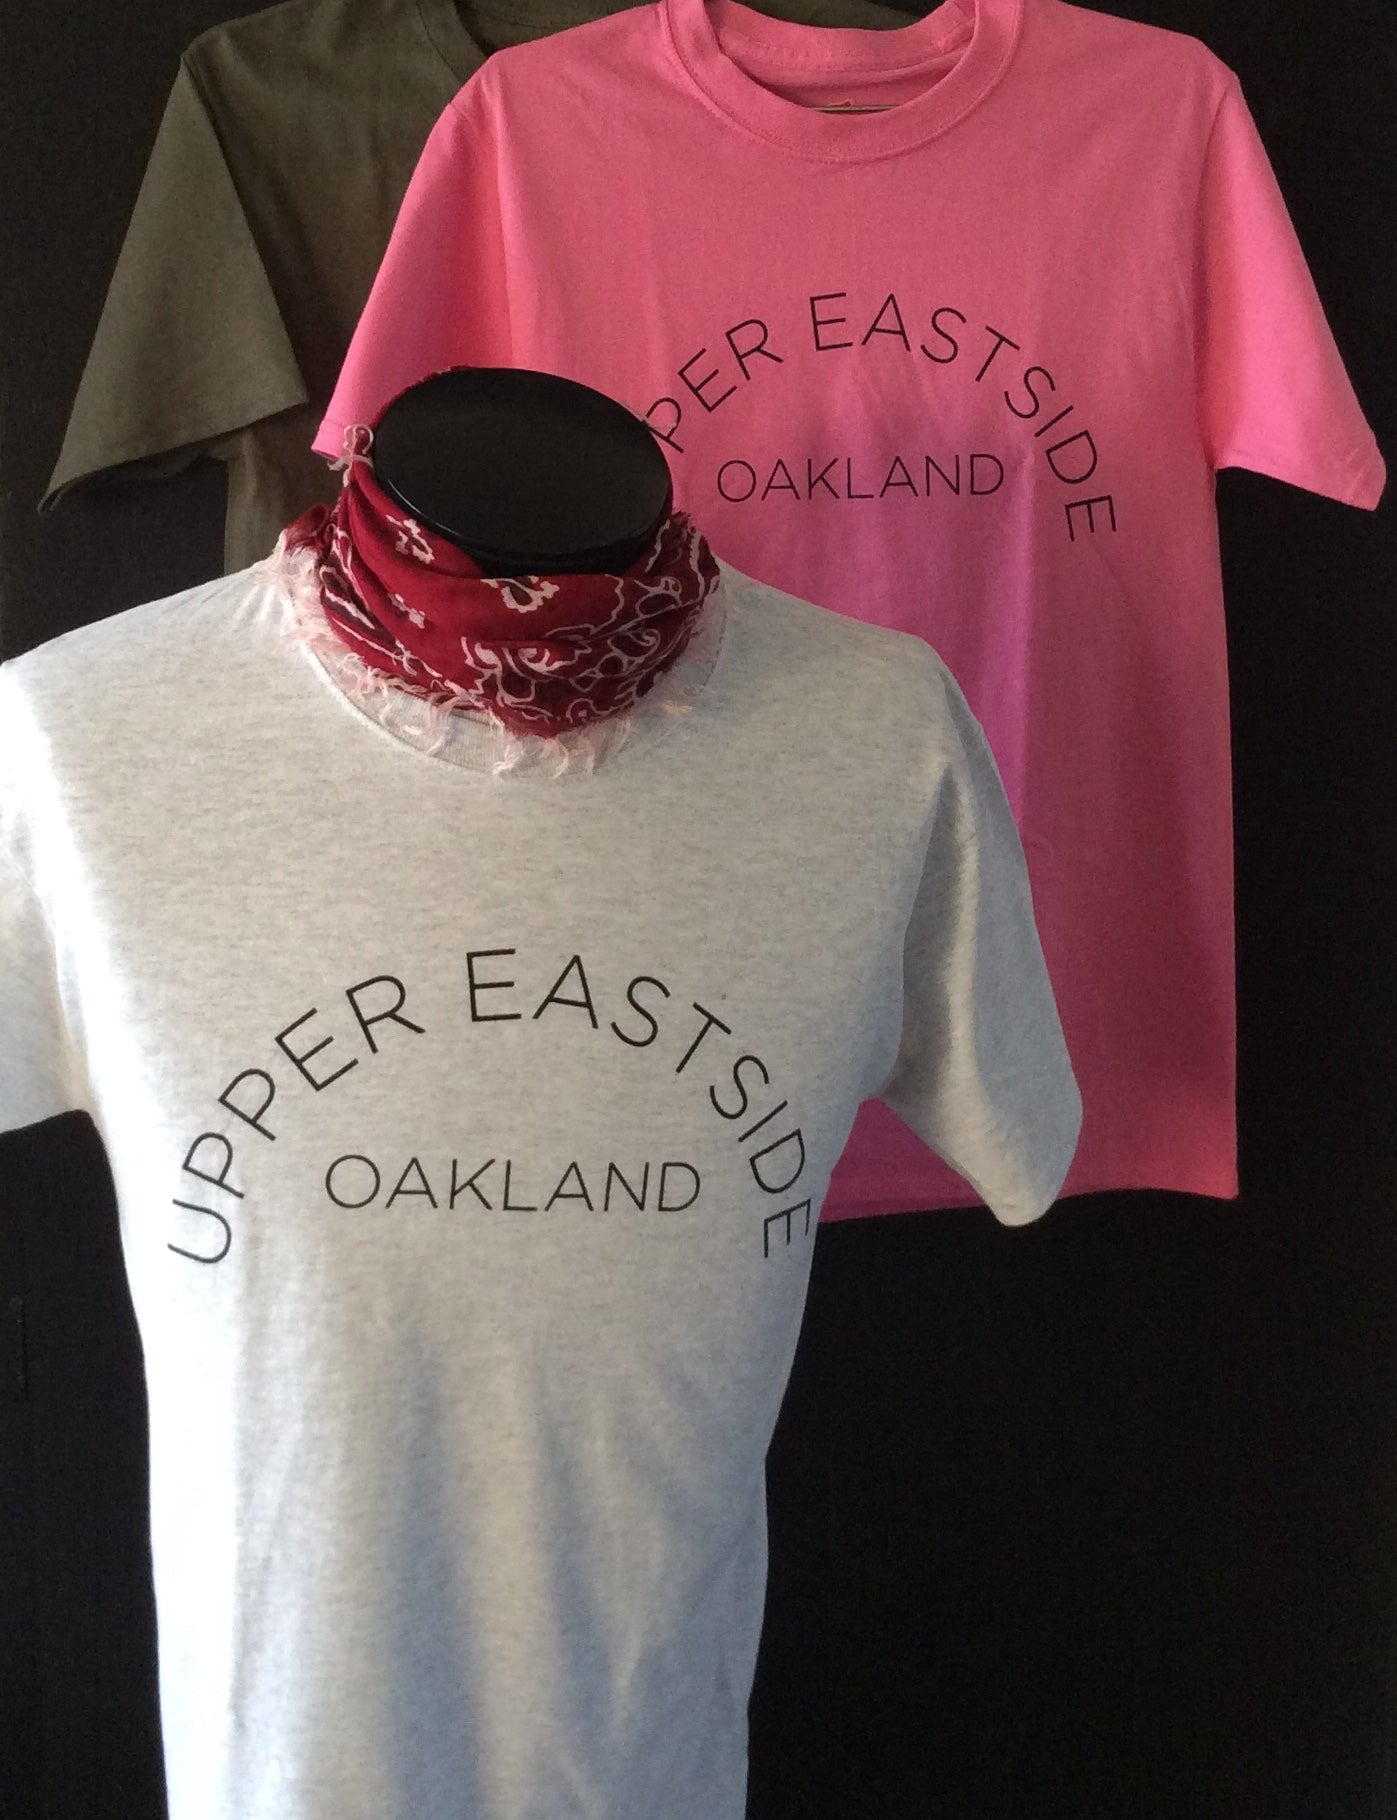 Upper Eastside Oakland Unisex Shortsleeve Tee